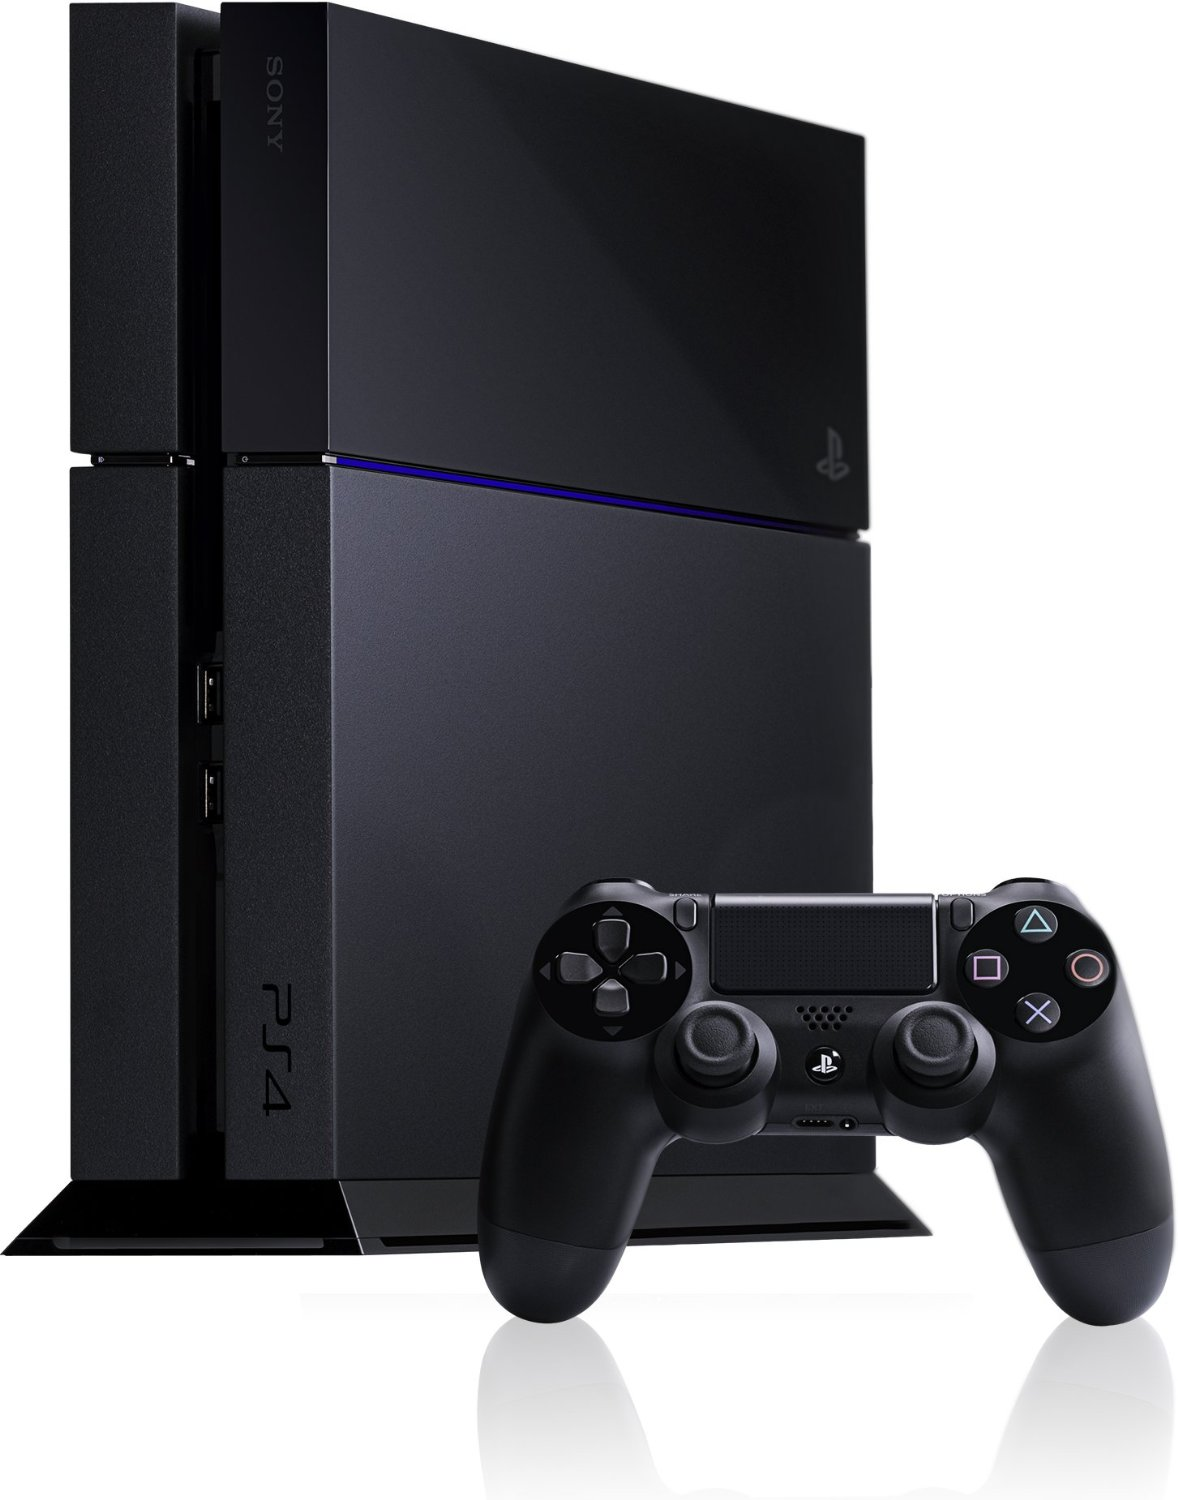 Sony Games For Ps4 : The best place to play